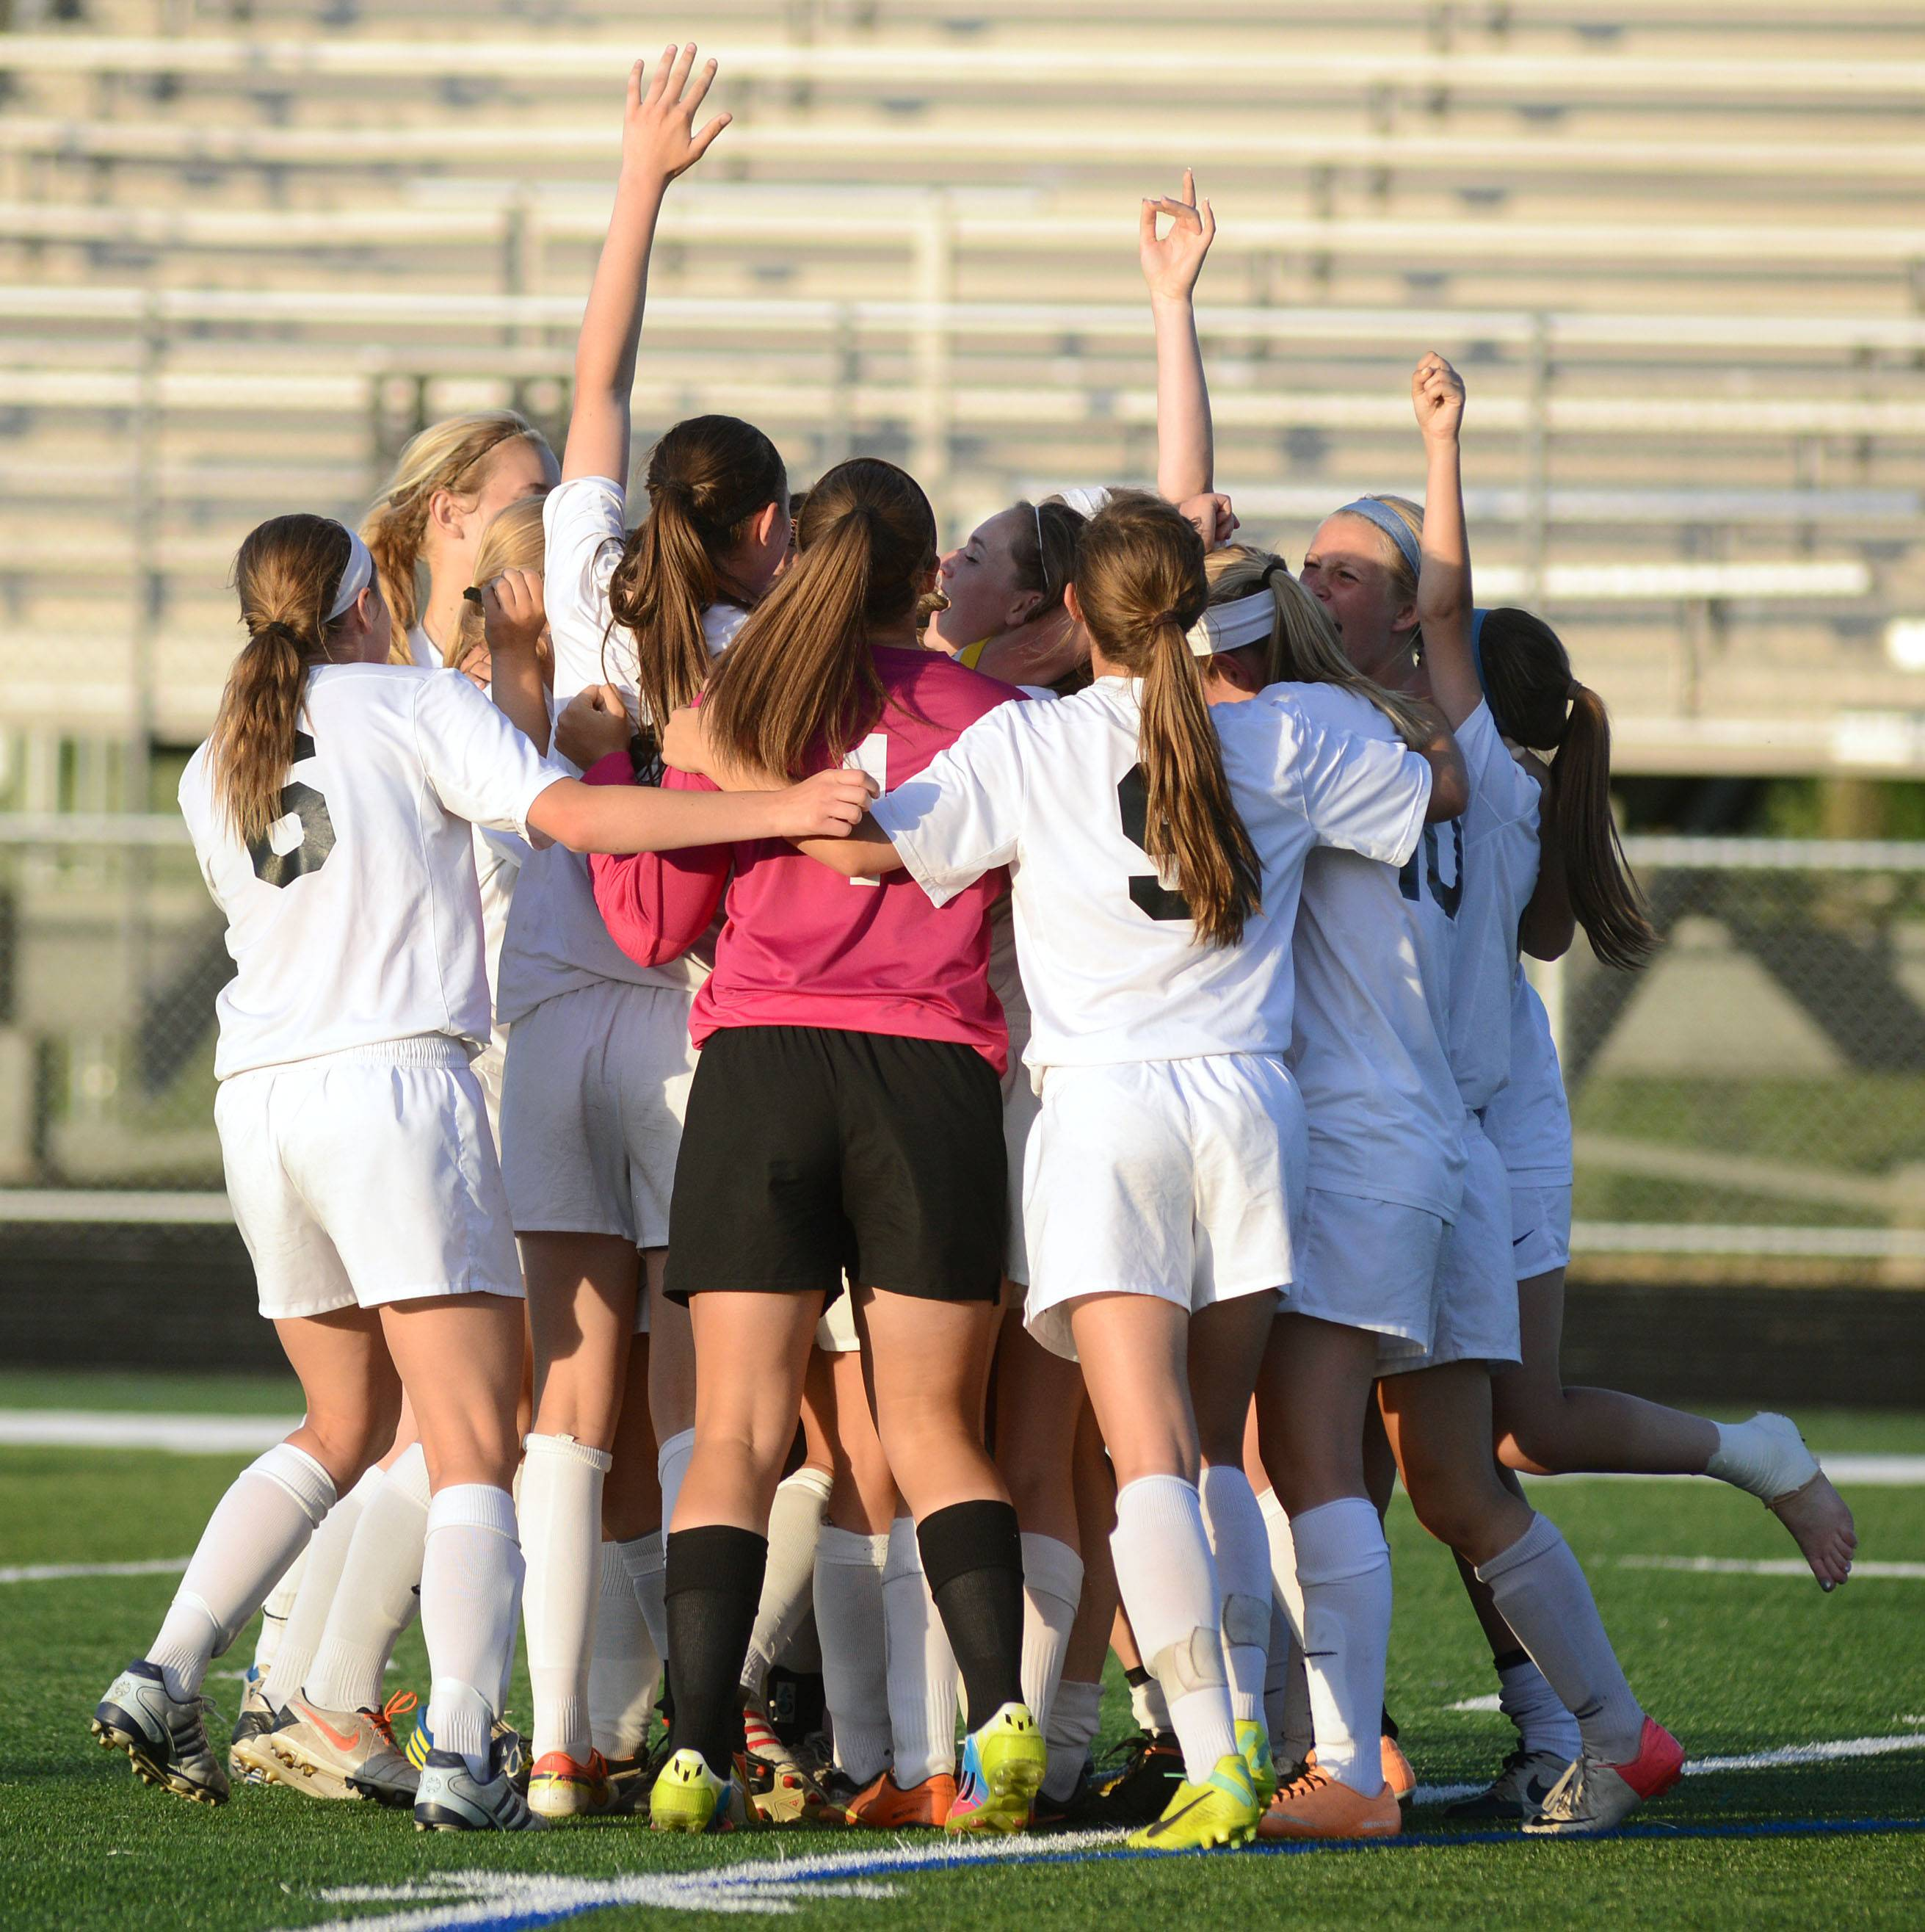 St. Charles East celebrates its win over Huntley on the field in the Class 3A girls soccer supersectional at Lake Park High School in Roselle on Tuesday, June 3.